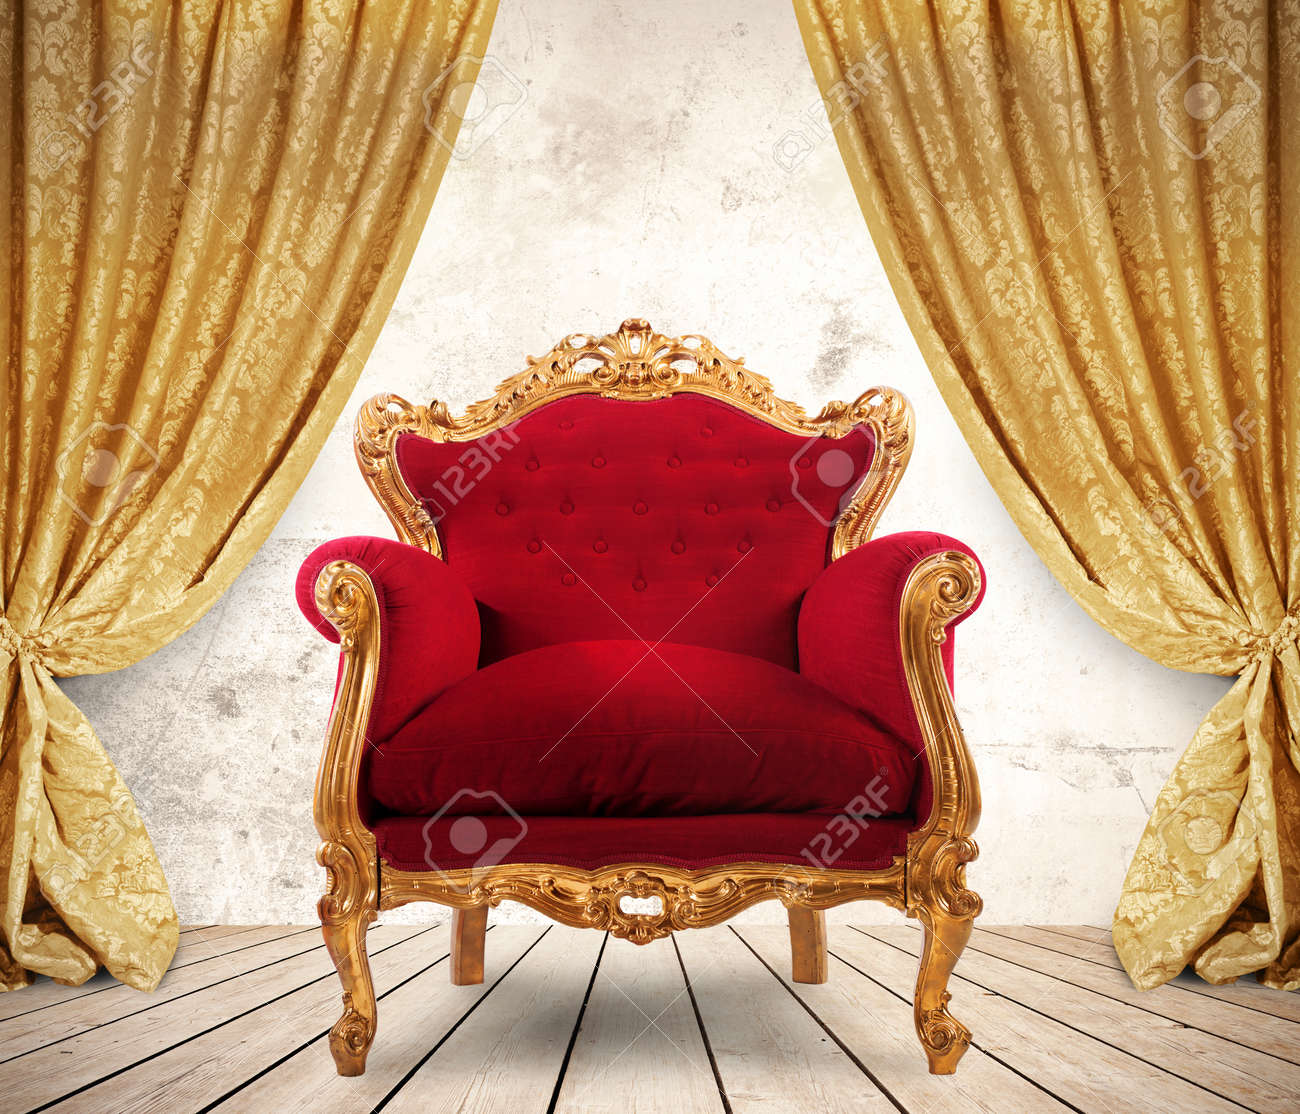 Royalty free or white curtain background drapes royalty free stock - Curtains Room With Golden Curtains And Royal Armchair